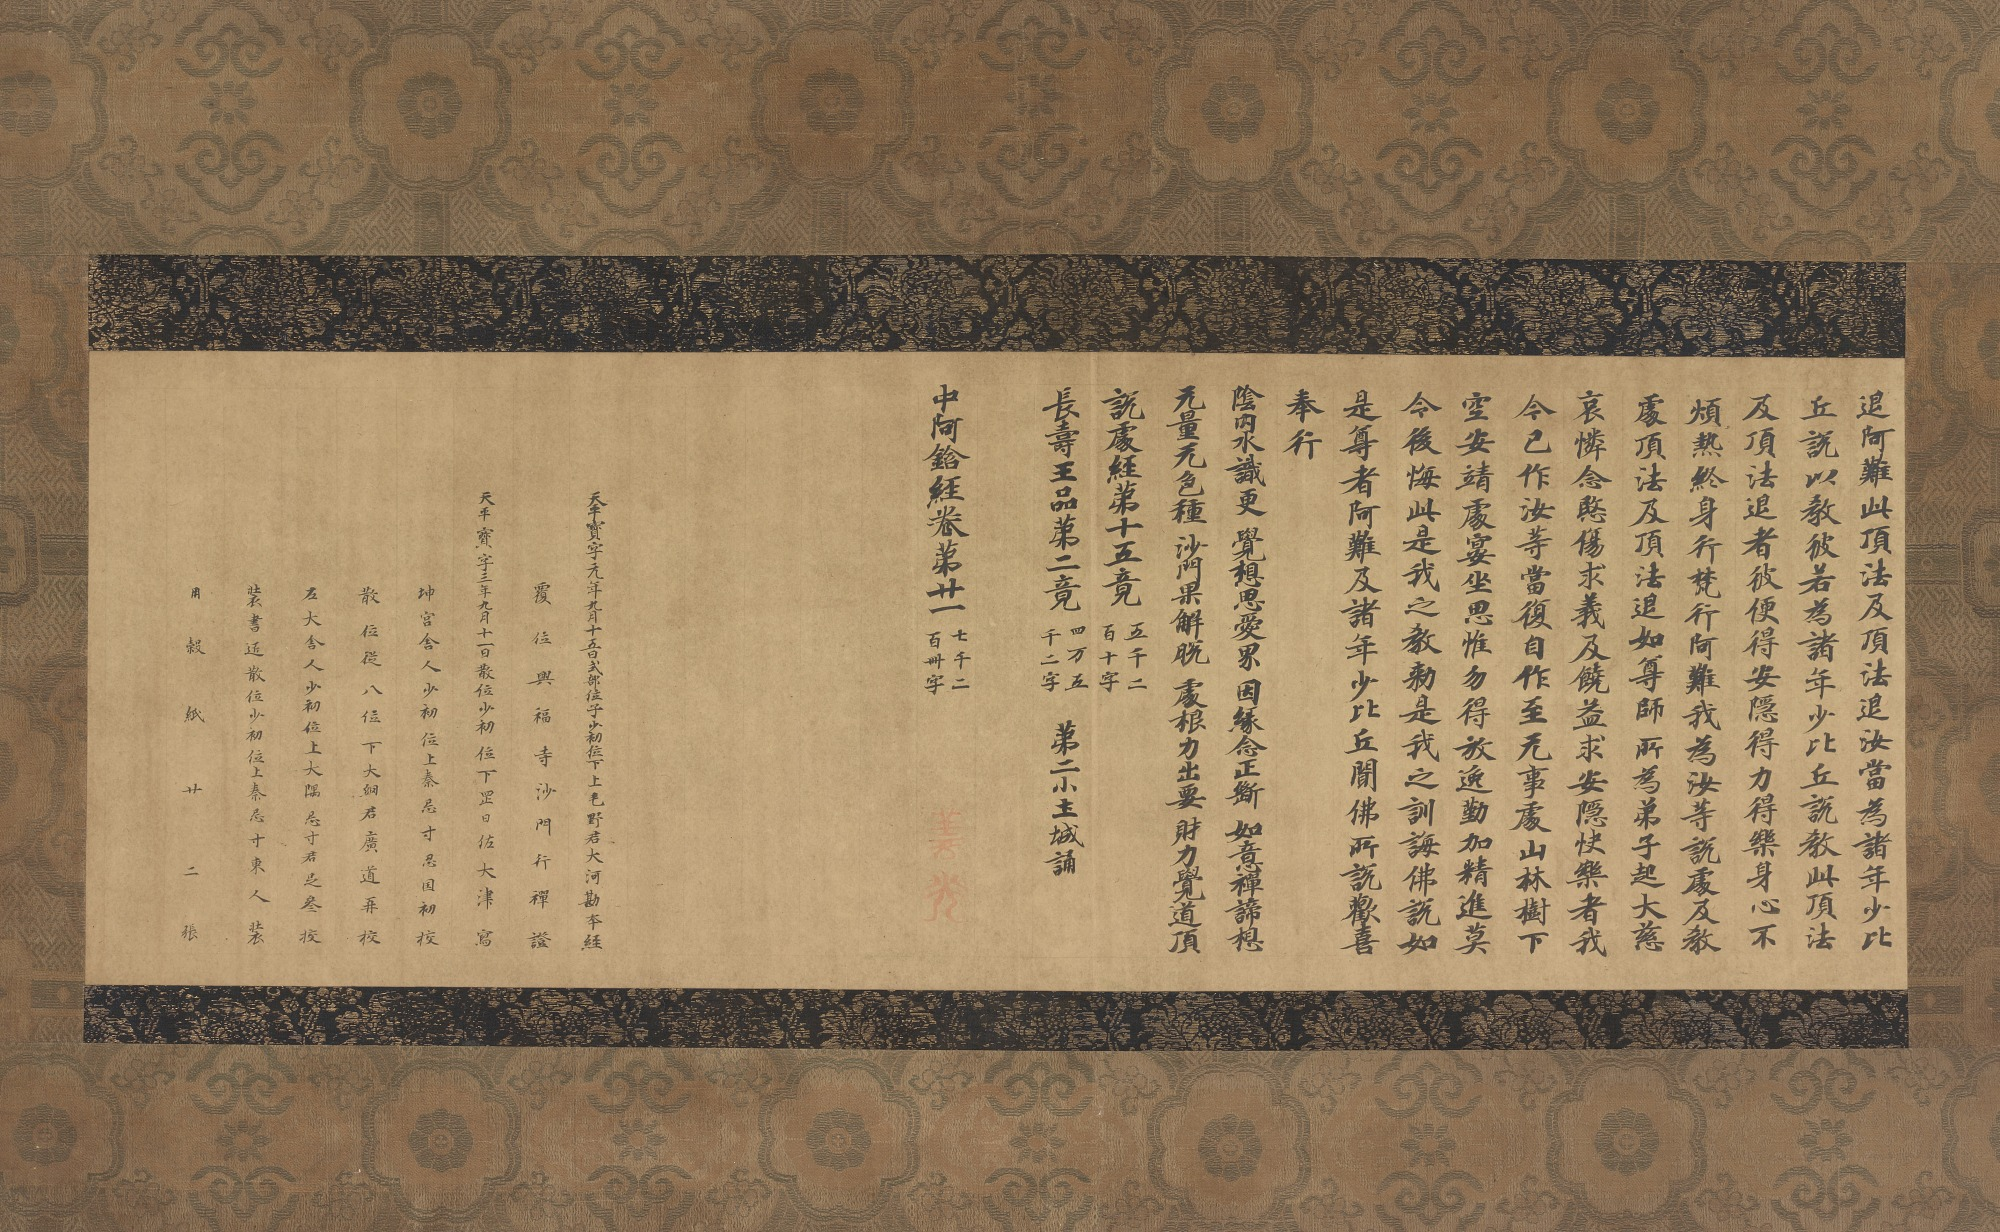 : Section of Chapter 21 of the Medium-Length Agon Sutra